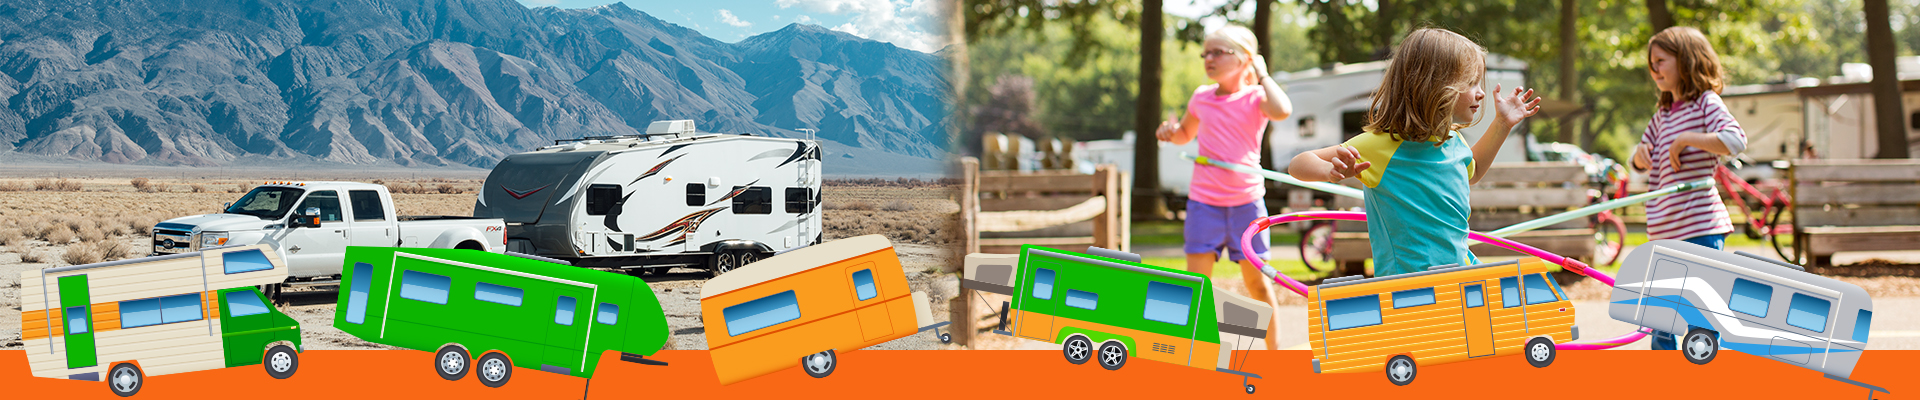 Will you be boondocking or at a campsite?